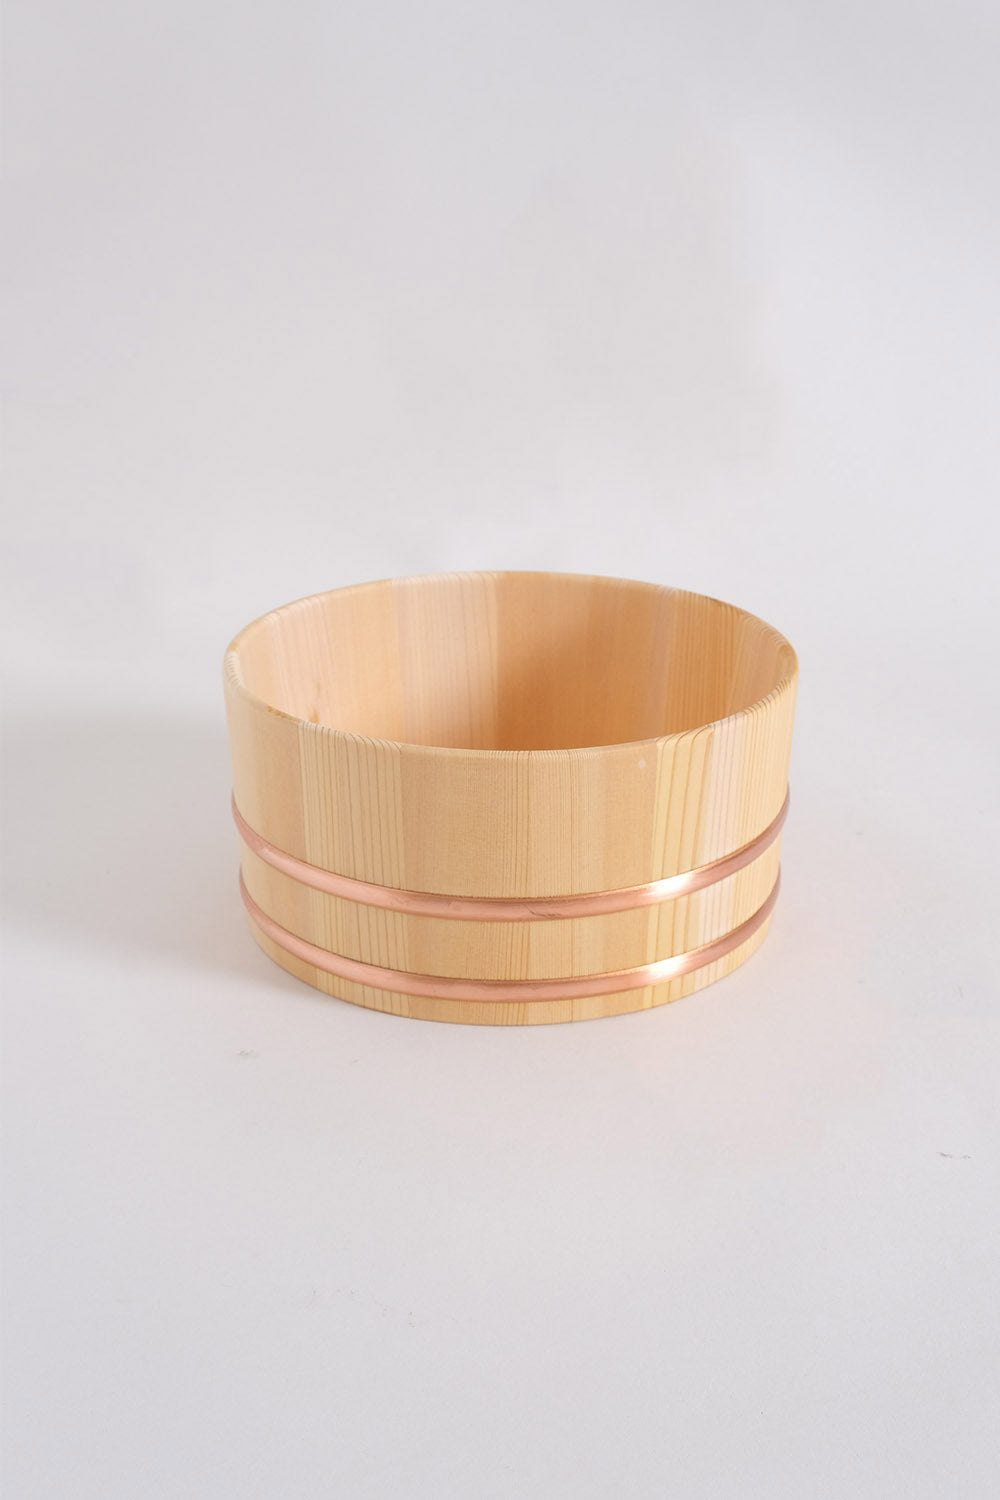 Japanese Wooden Wash Bowl – Small